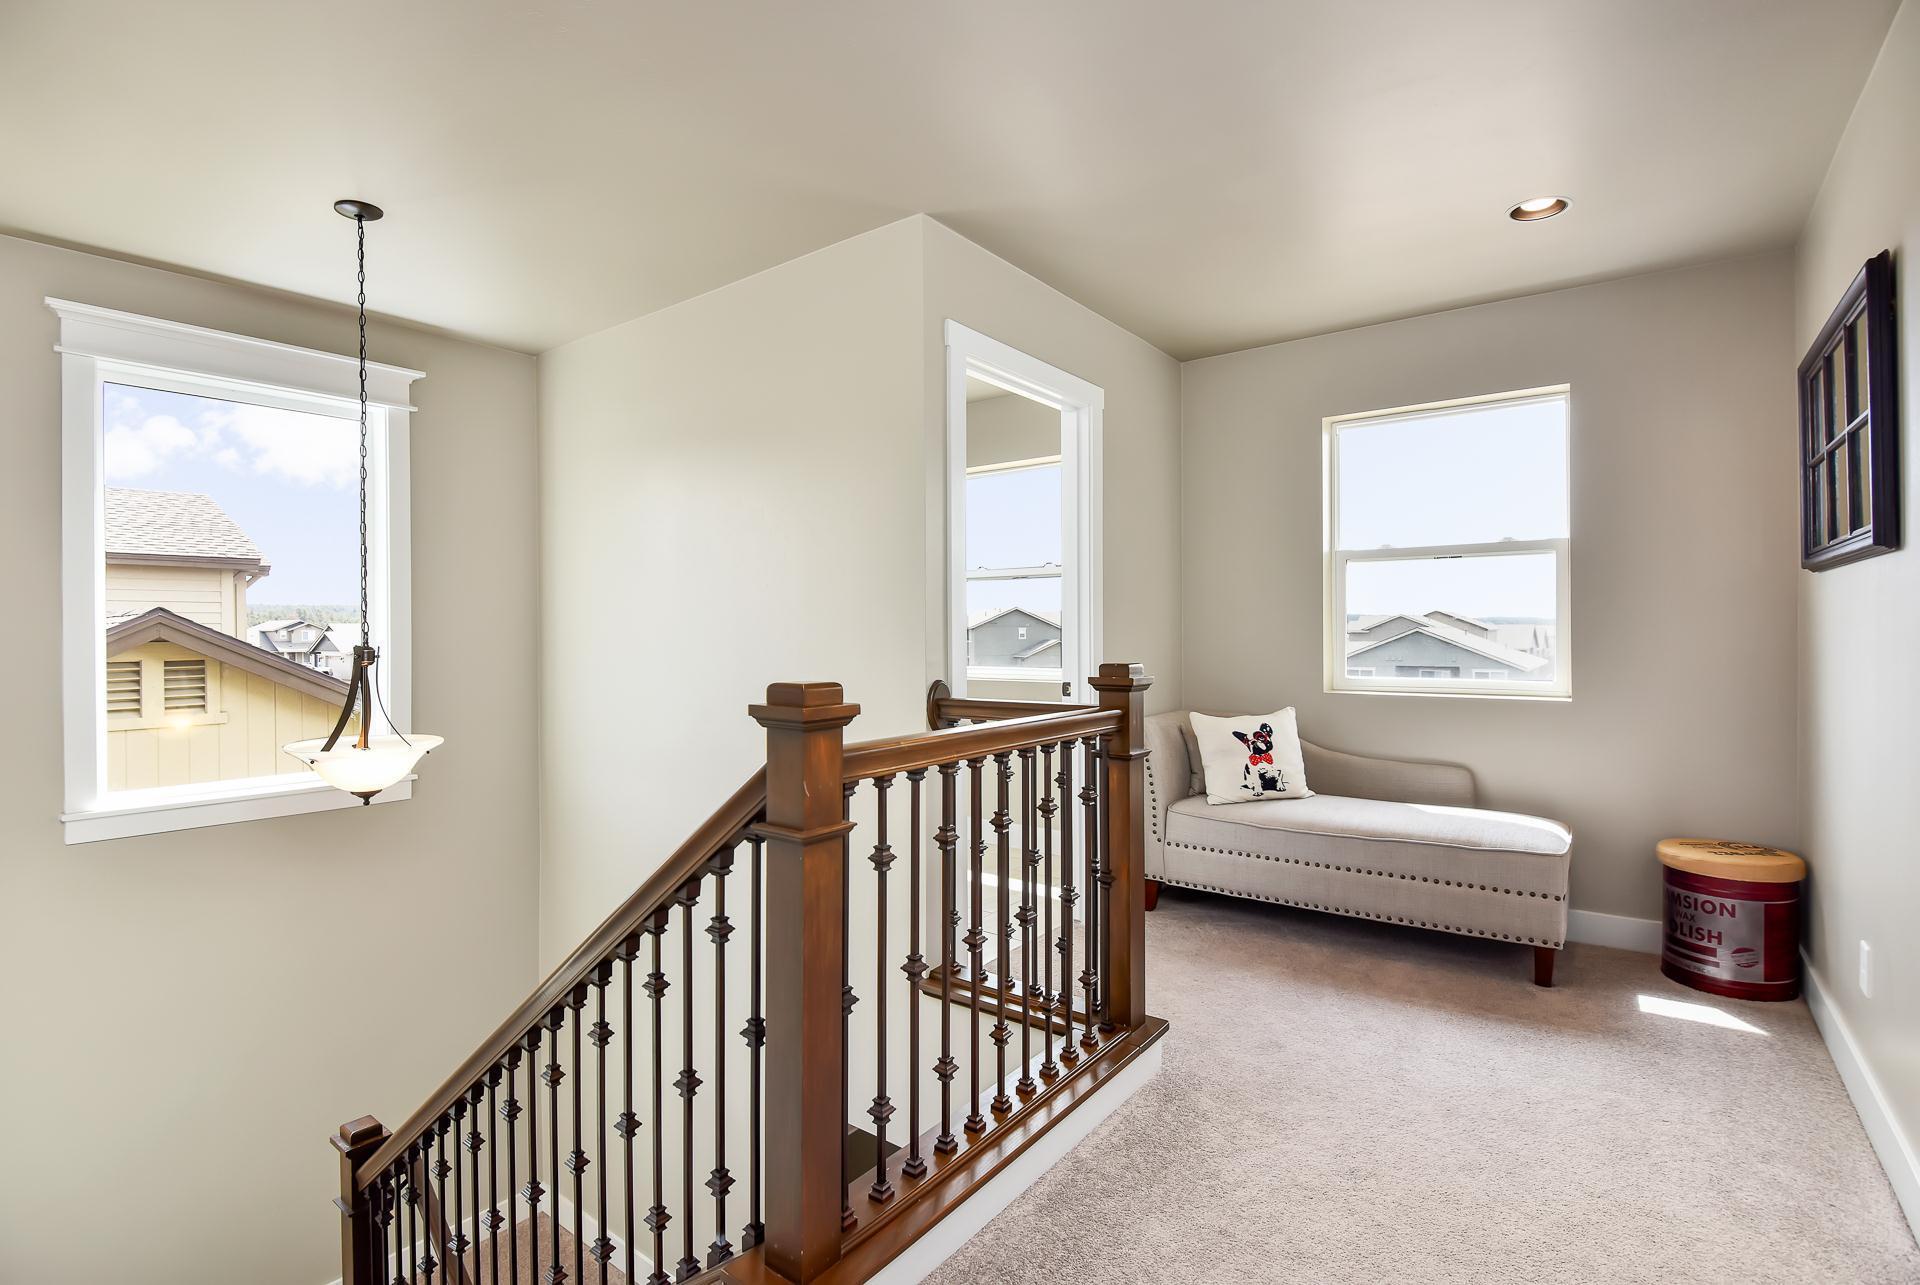 Living Area featured in the Flagstaff Meadows Plan 1941 By Capstone Homes in Flagstaff, AZ